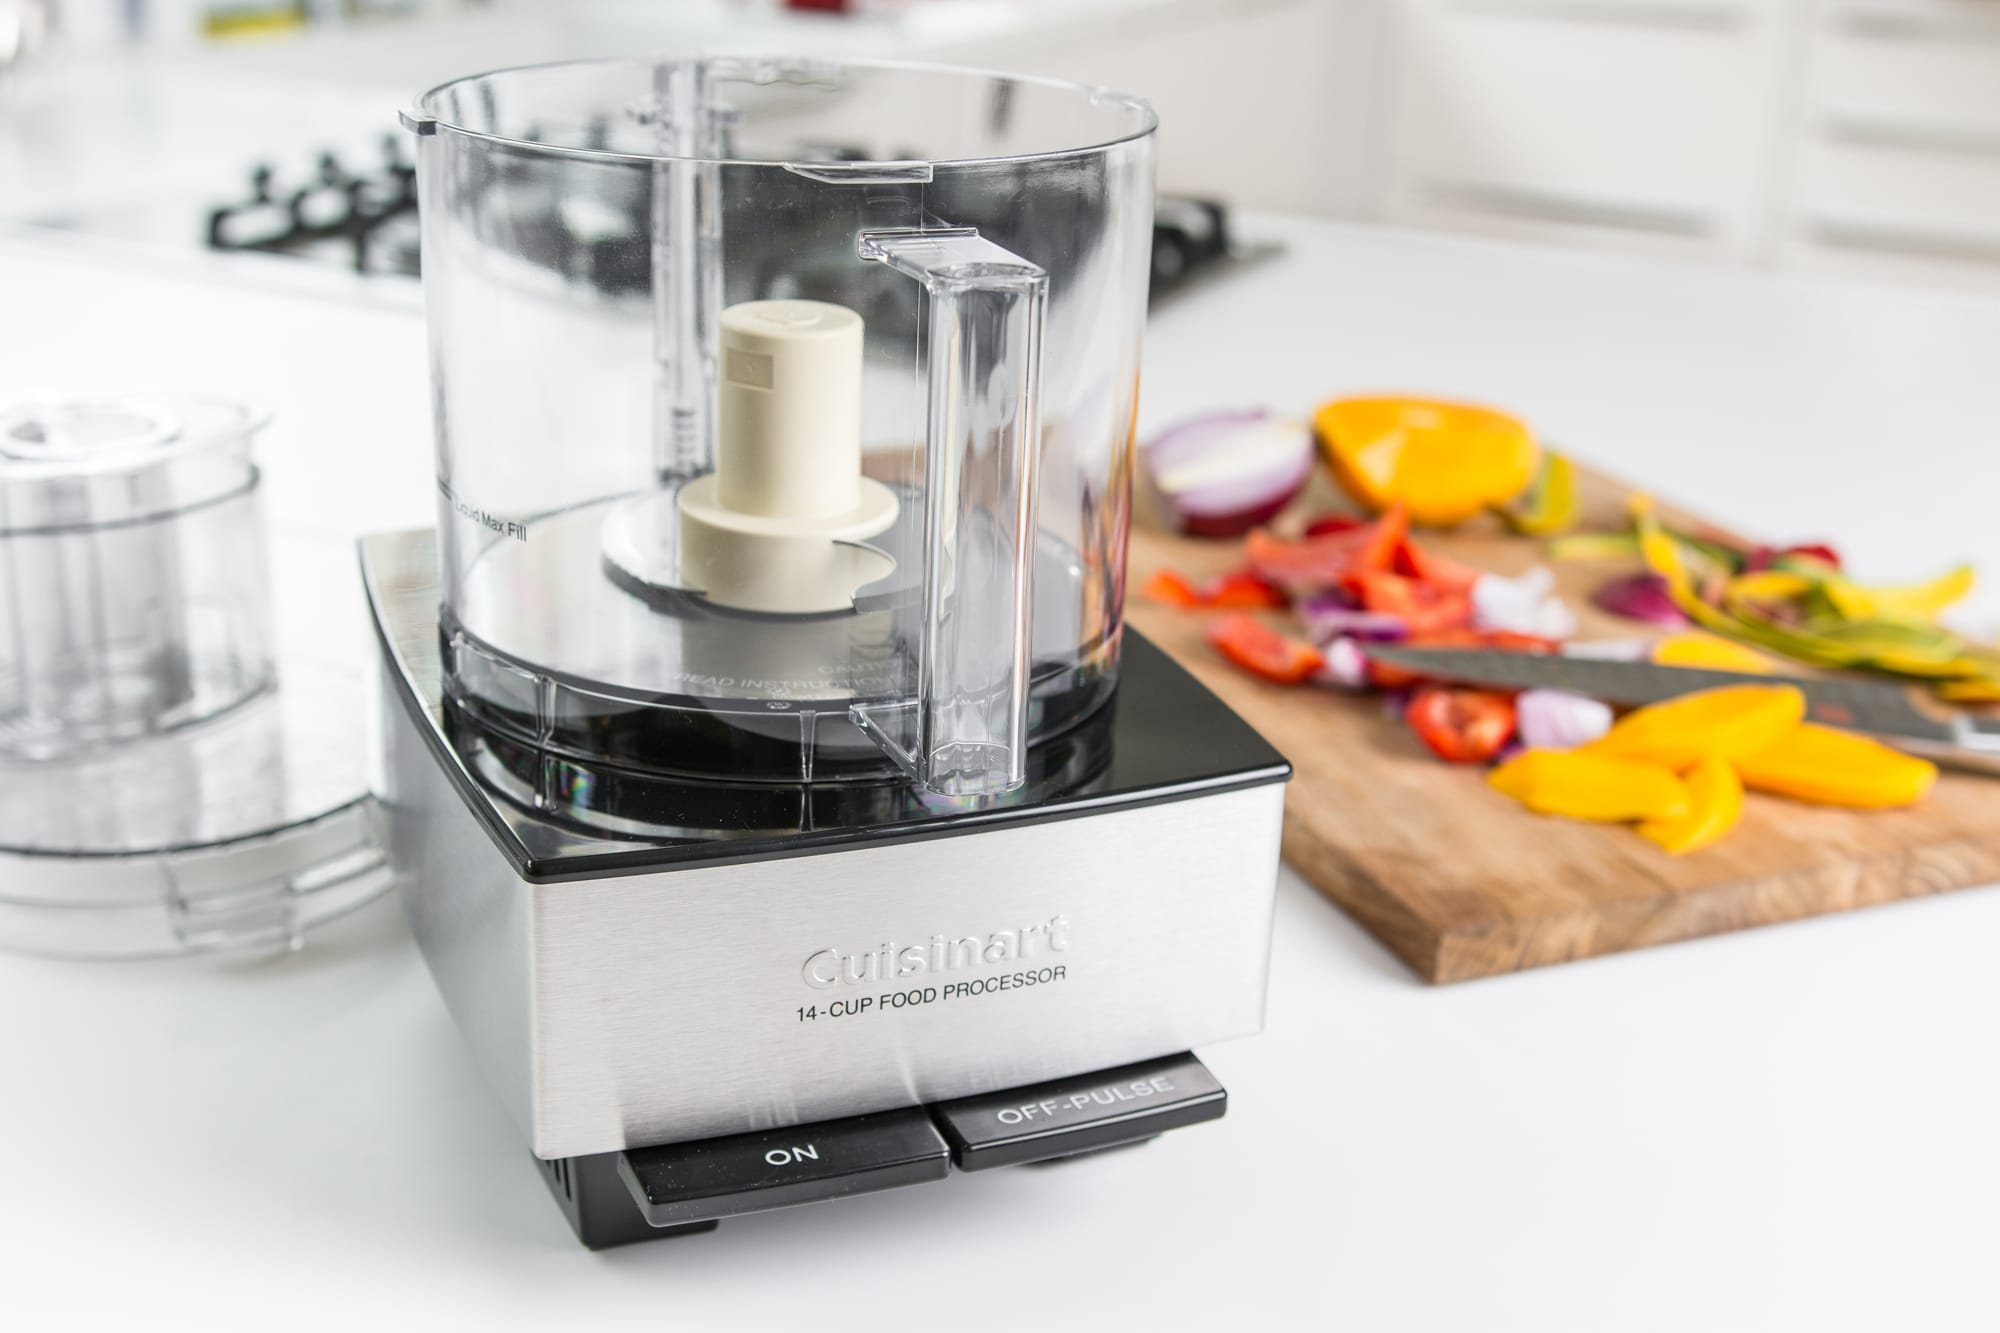 Best Food Processors 2020 The best food processor